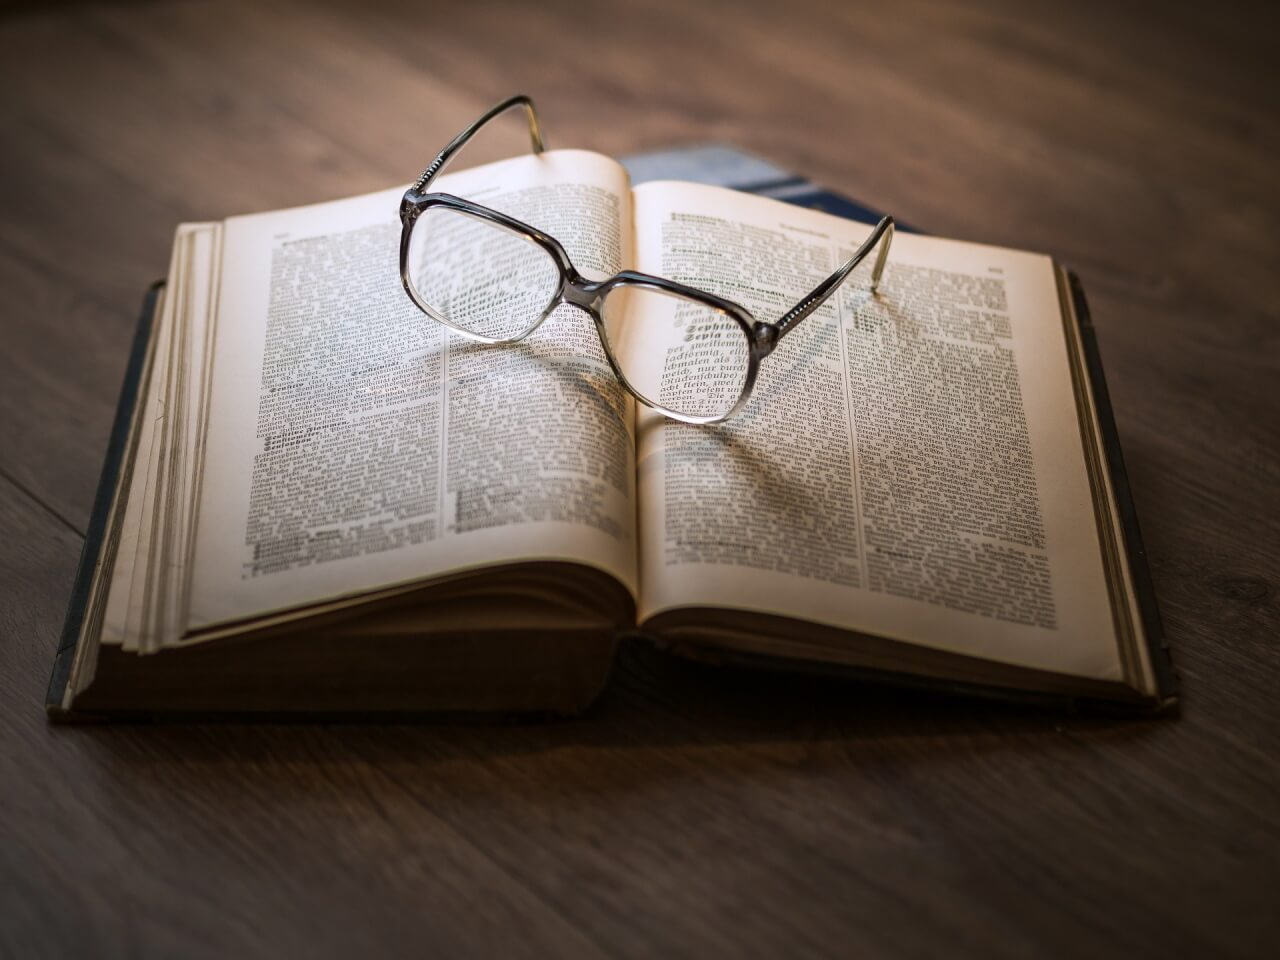 How to read more